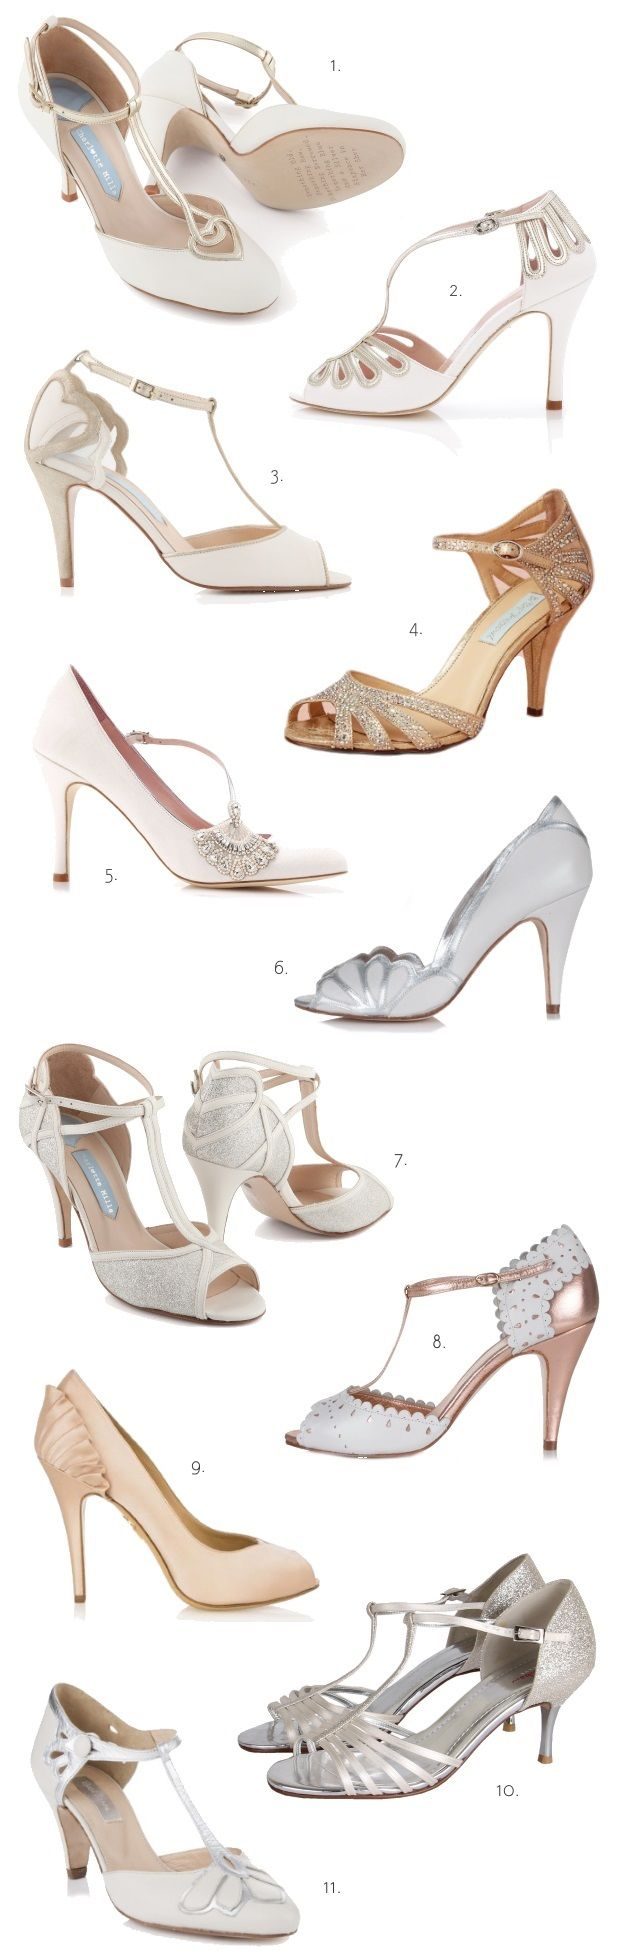 11 Gorgeous Vintage Inspired Wedding Shoes Weddingsonline Wedding Shoes Heels Wedding Shoes Vintage Vintage Inspired Wedding Shoes